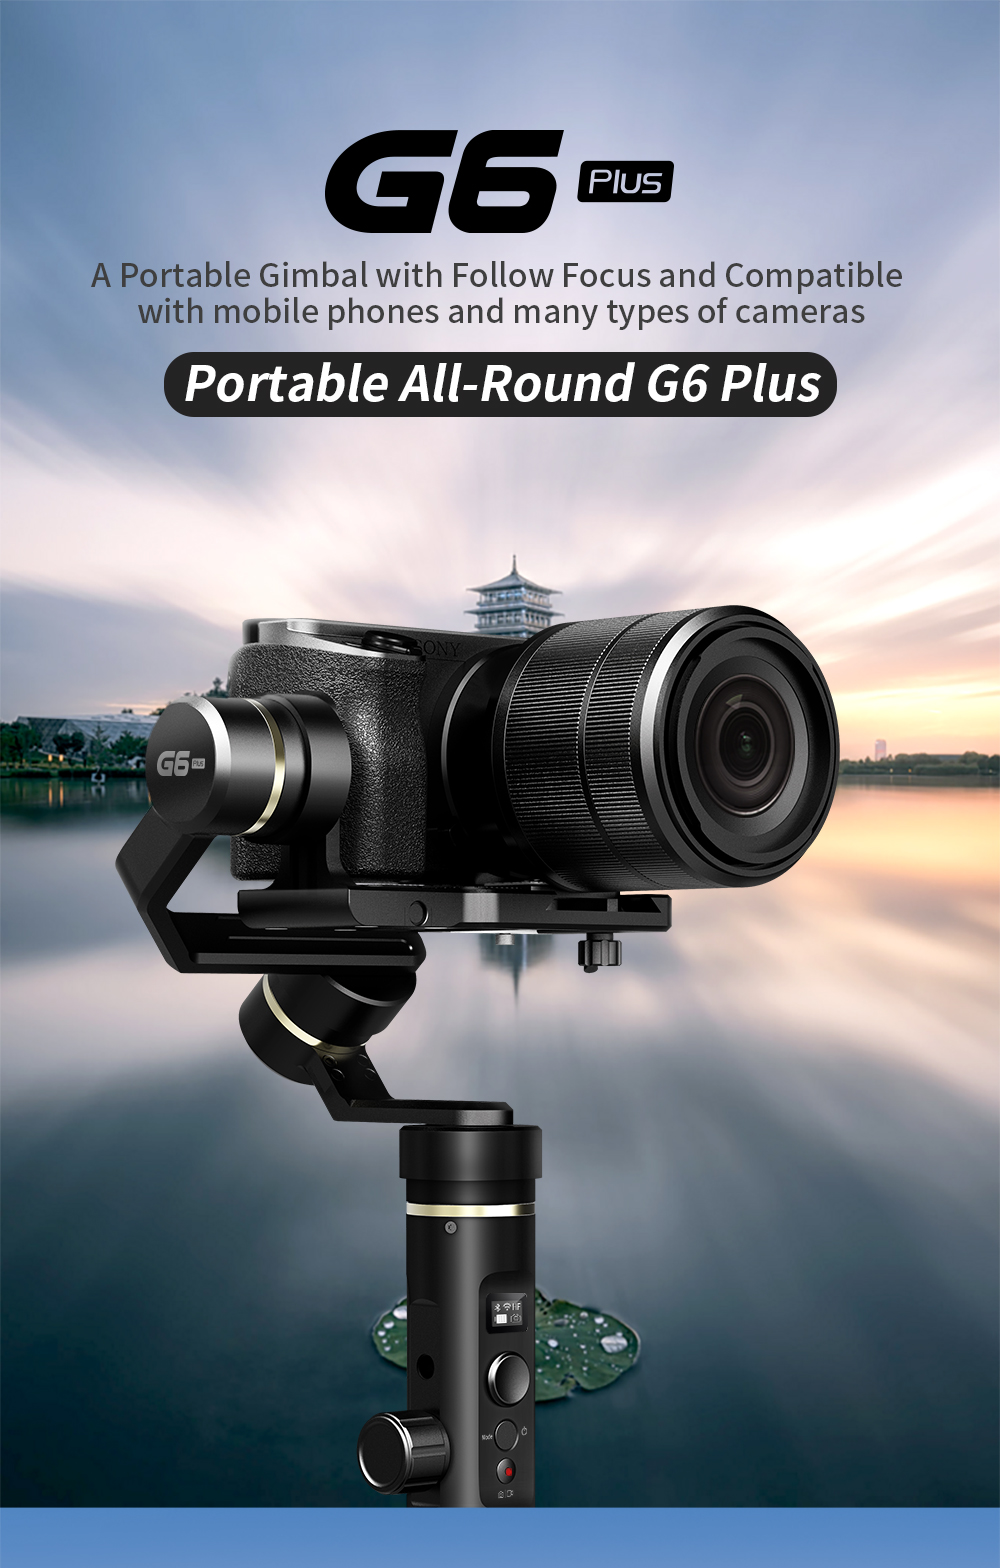 FeiyuTech G6 Plus 3-Axis Handheld Gimbal Stabilizer for Mirrorless Camera Pocket Camera GoPro Smartphone Payload 800g Feiyu G6P 1